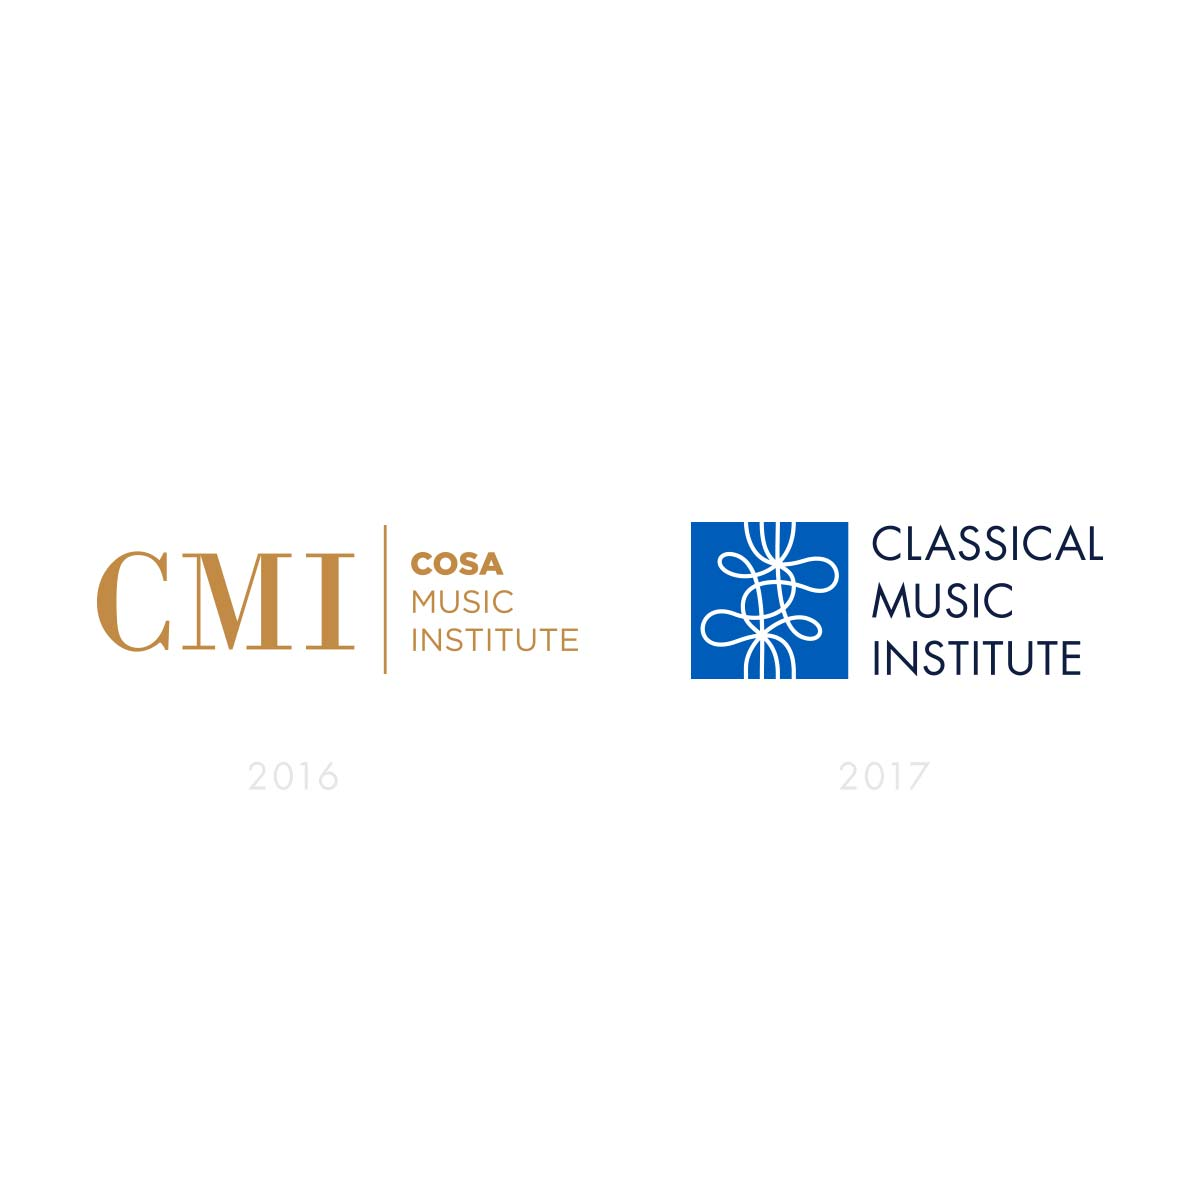 CMI logo progression